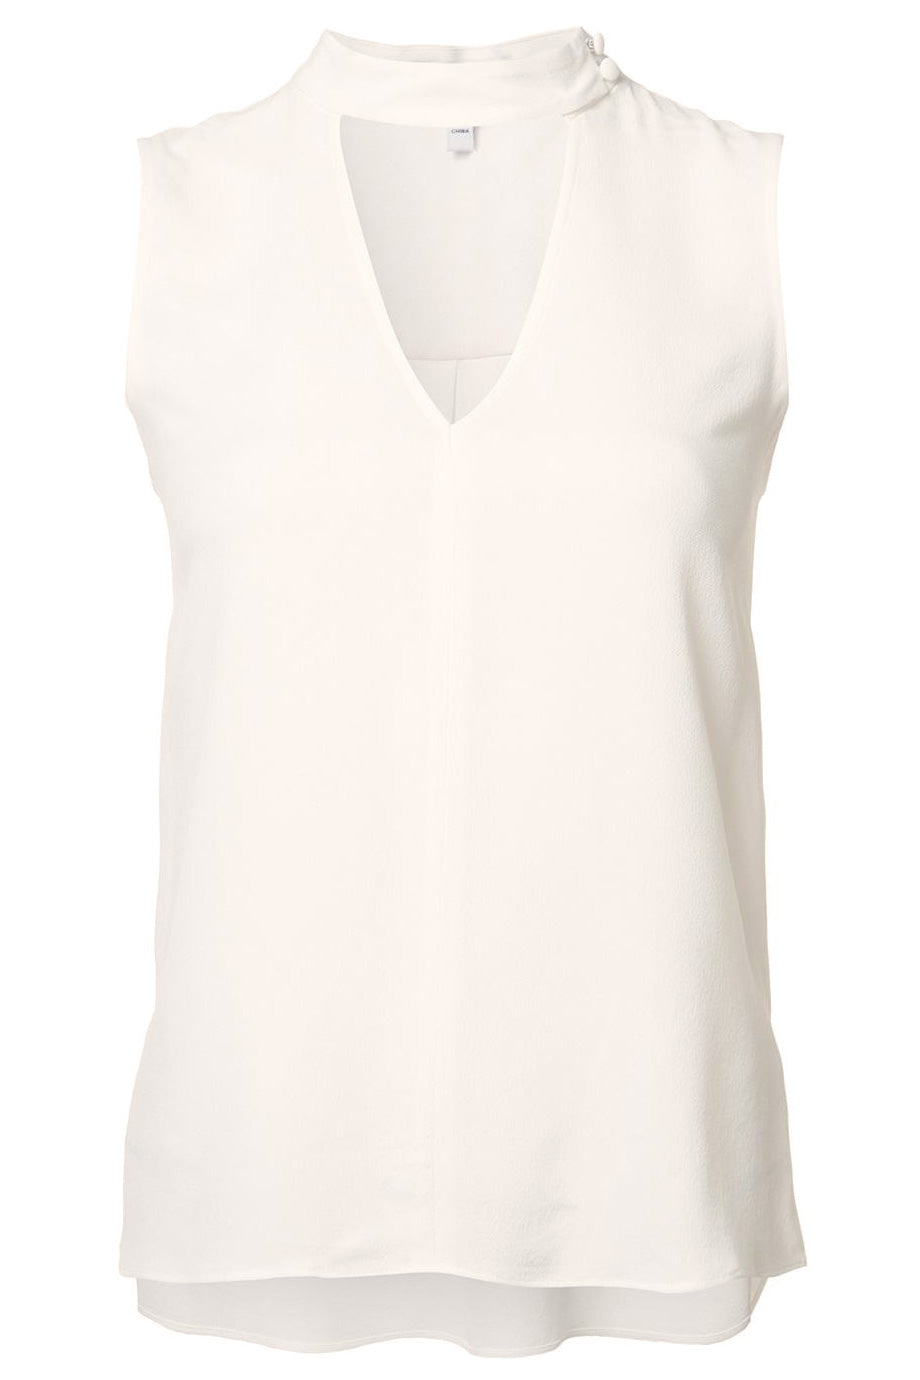 Derek Lam 10 Crosby Off White Sleeveless Cut Out Top / Sz 4